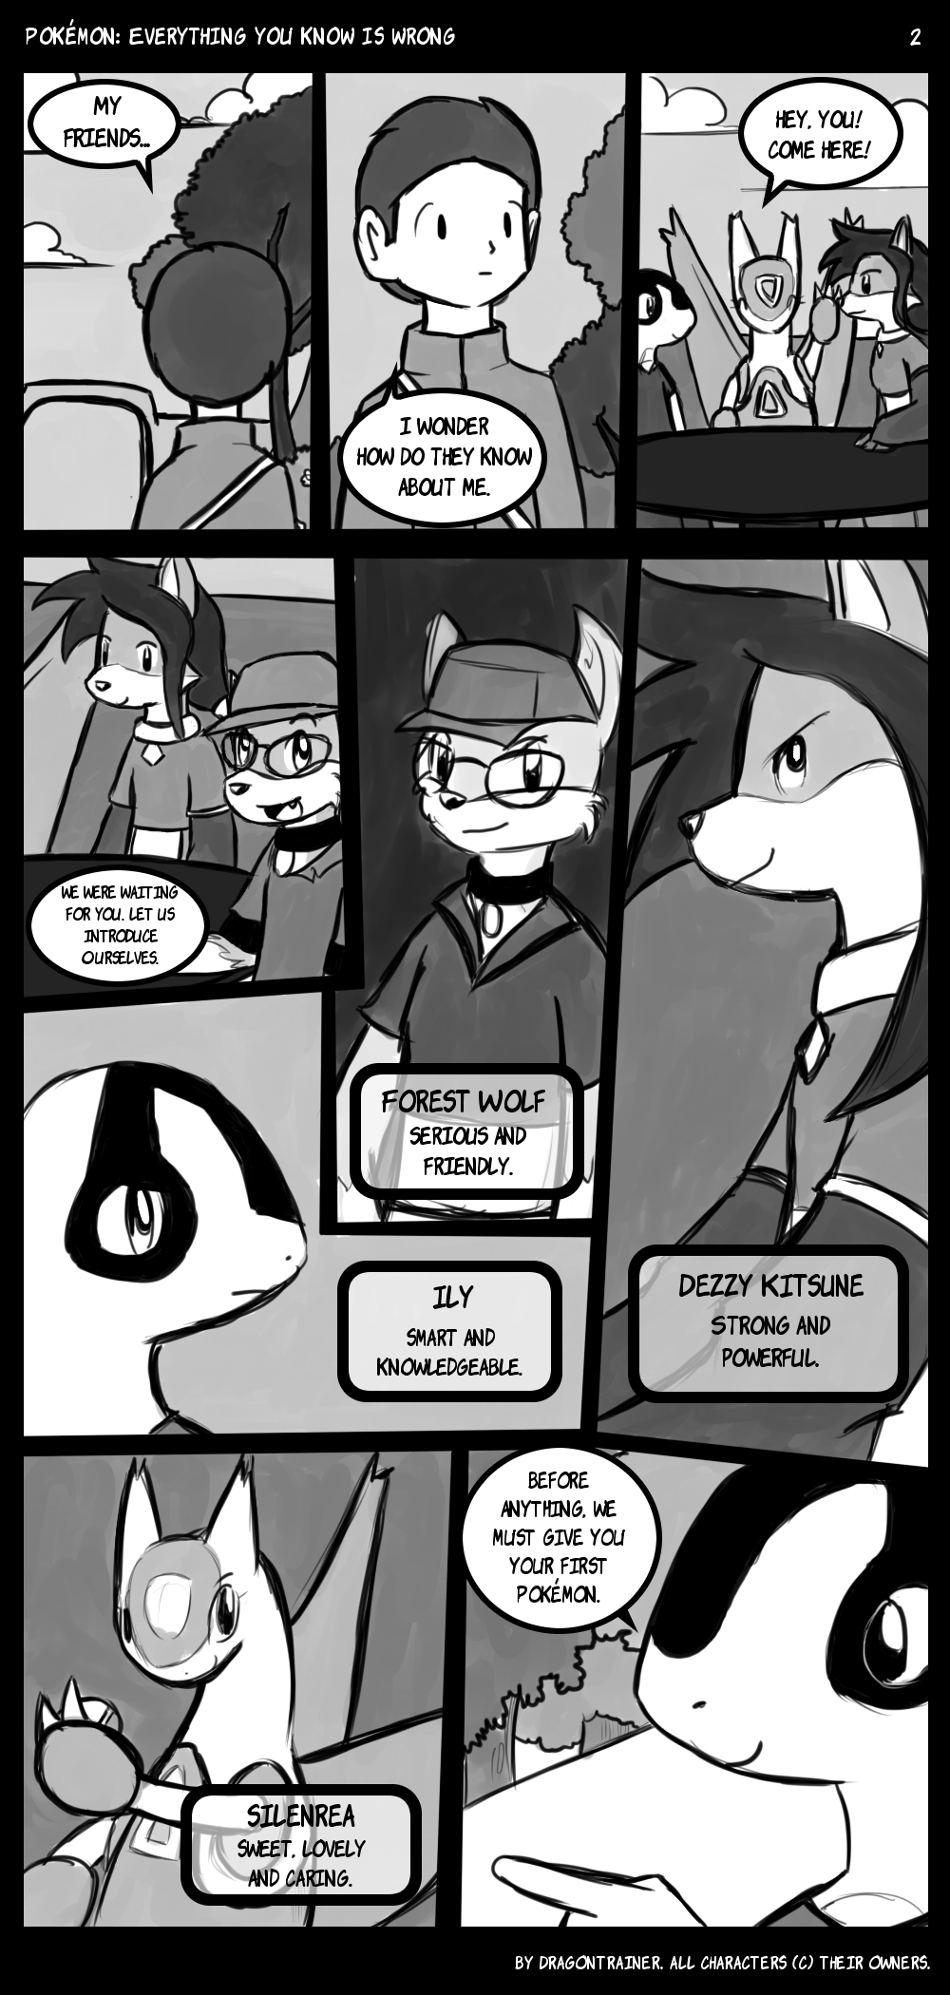 Most recent image: Pokémon: Everything you know is wrong, Page 2